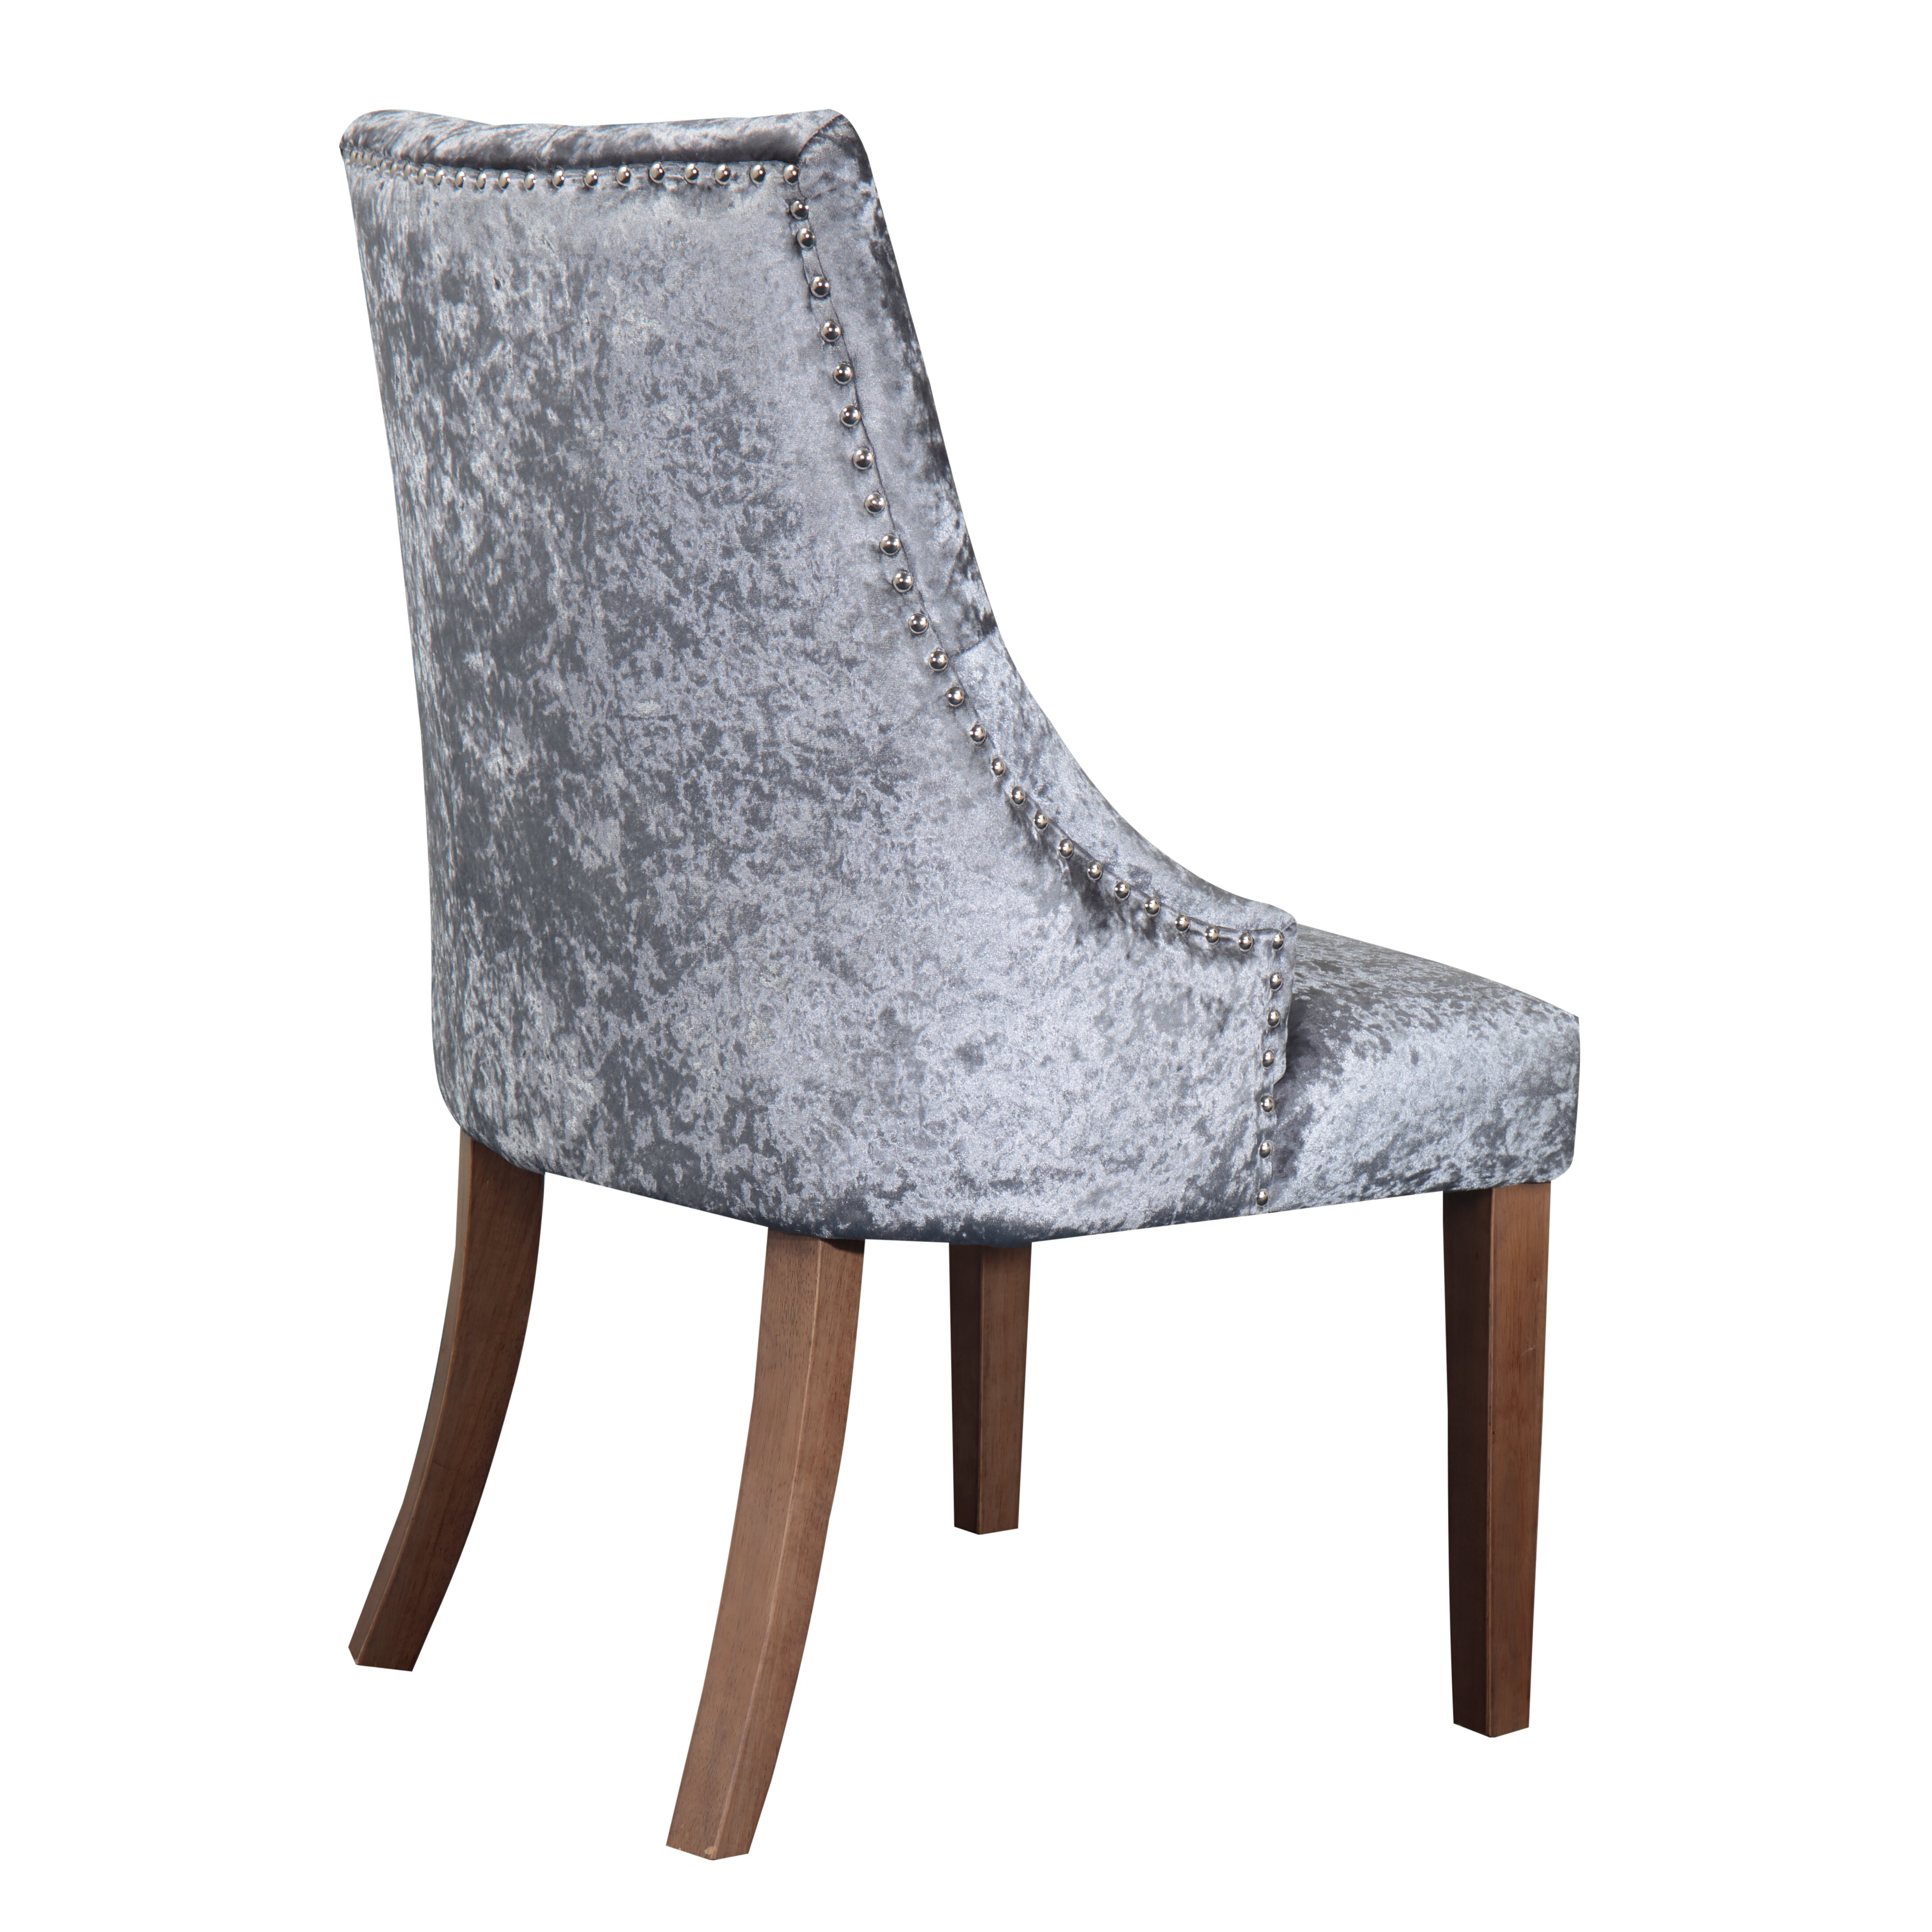 Design#32003200: Cheap Upholstered Dining Chairs – Morgana Tufted ...